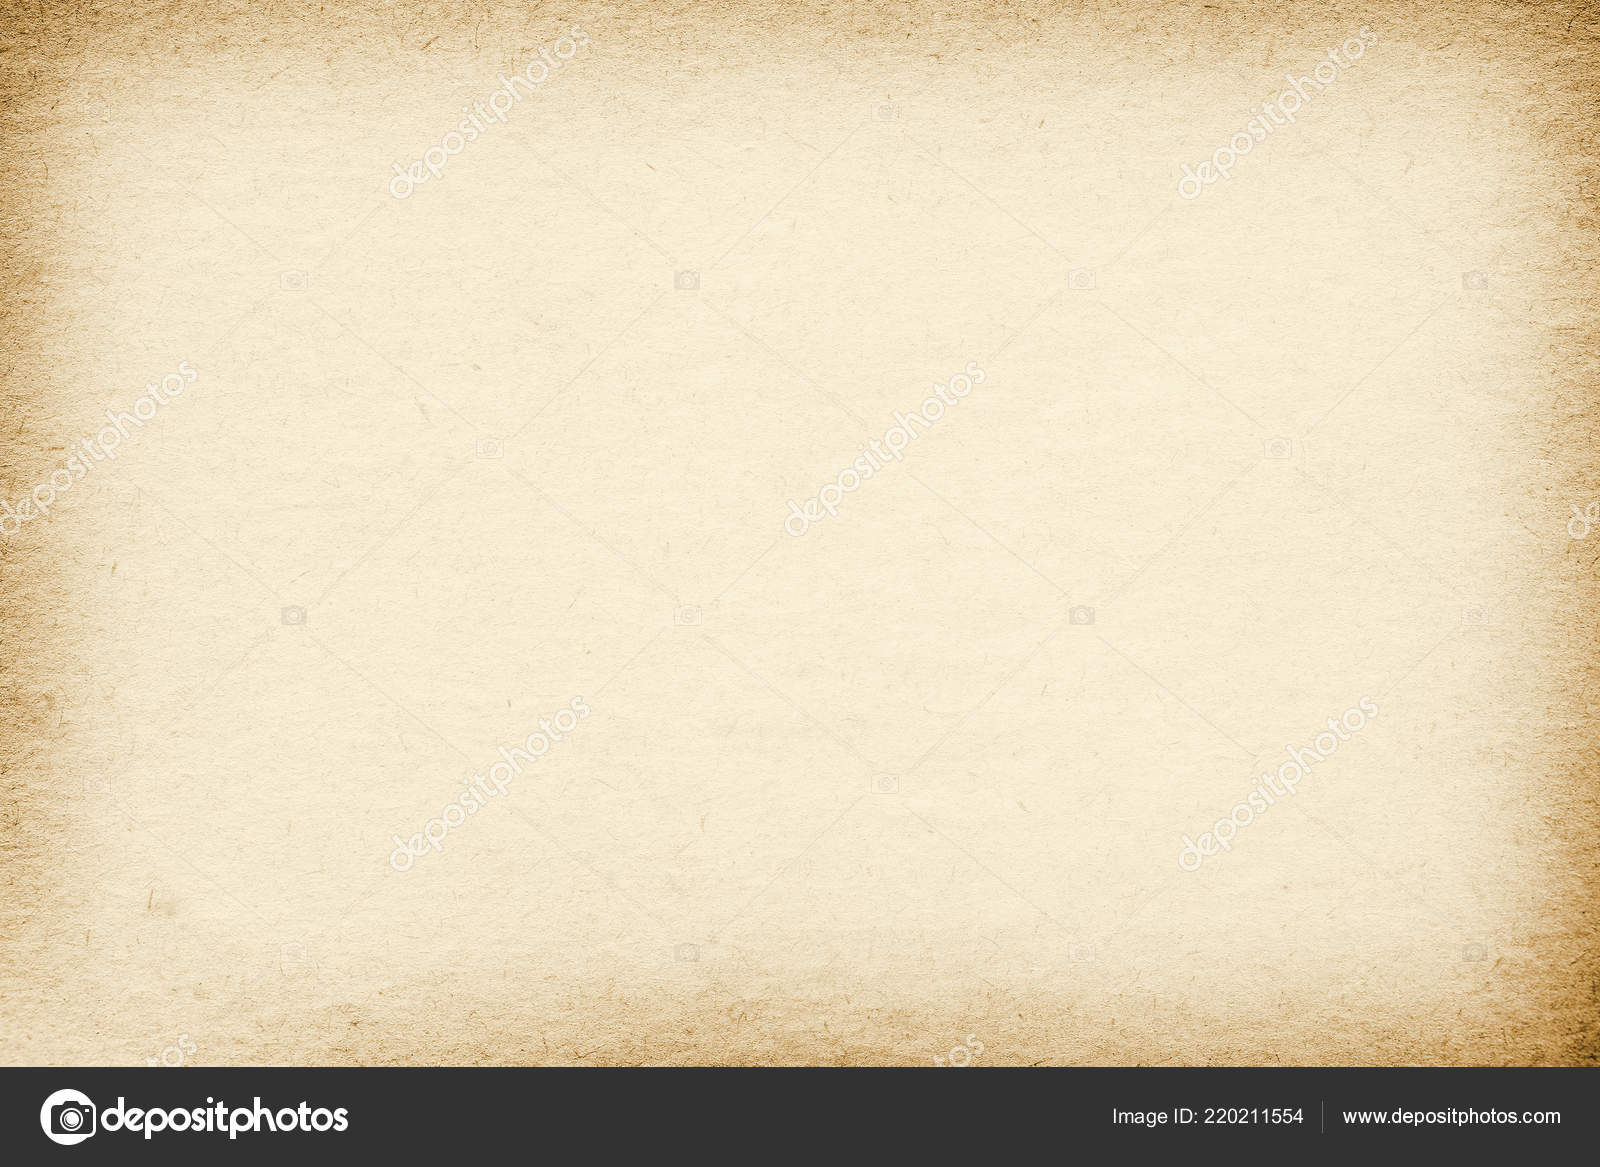 Old Paper Texture Background — Stock Photo © avlntn #220211554